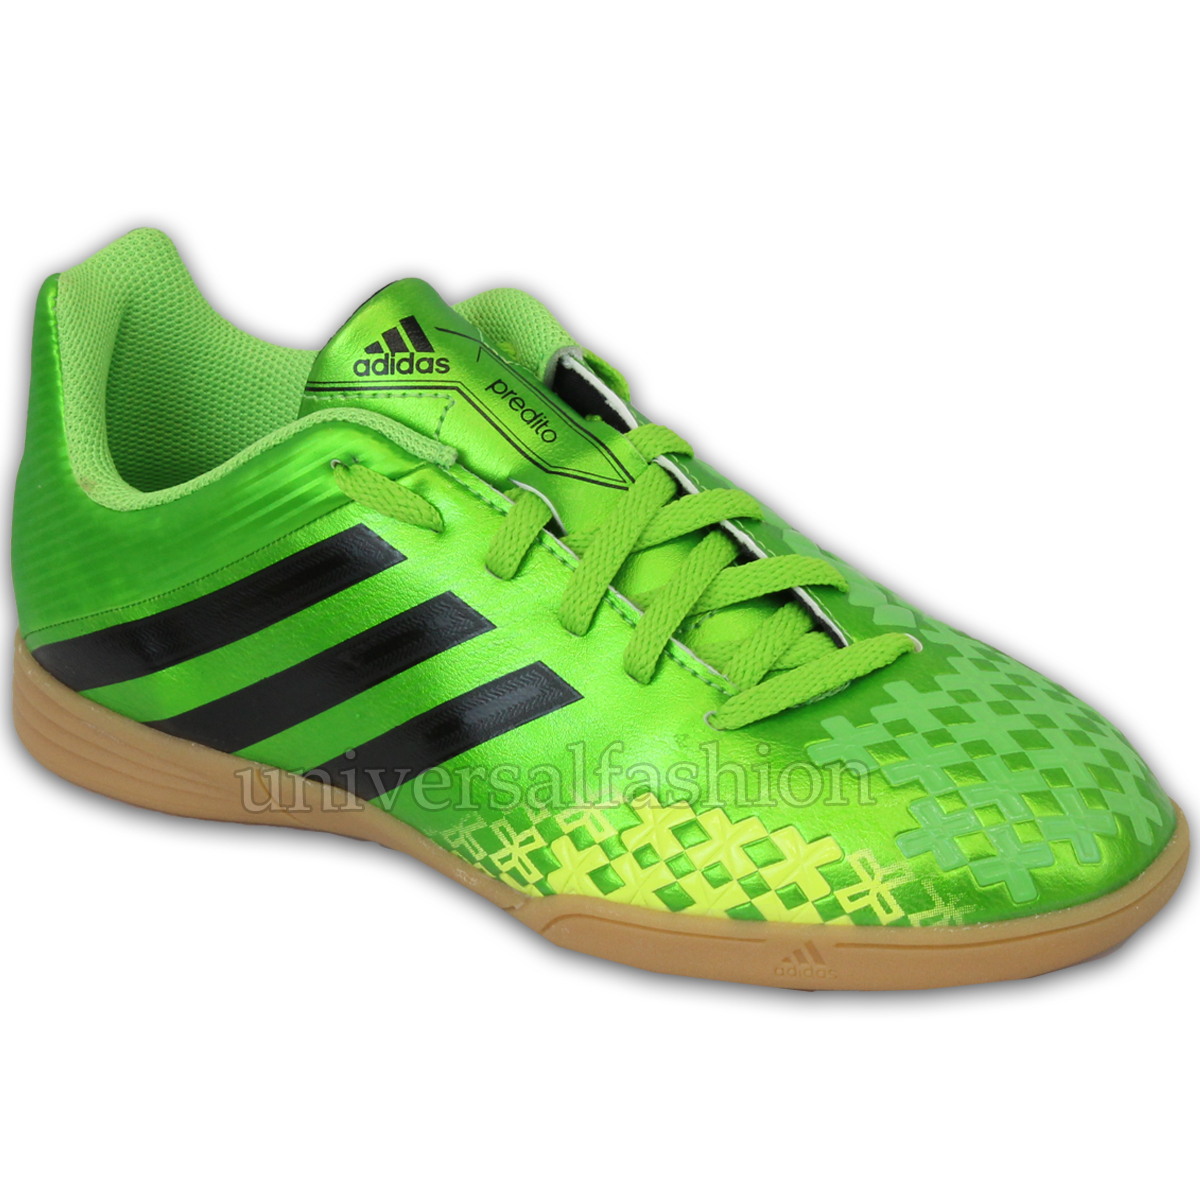 Adidas Football Casual Shoes